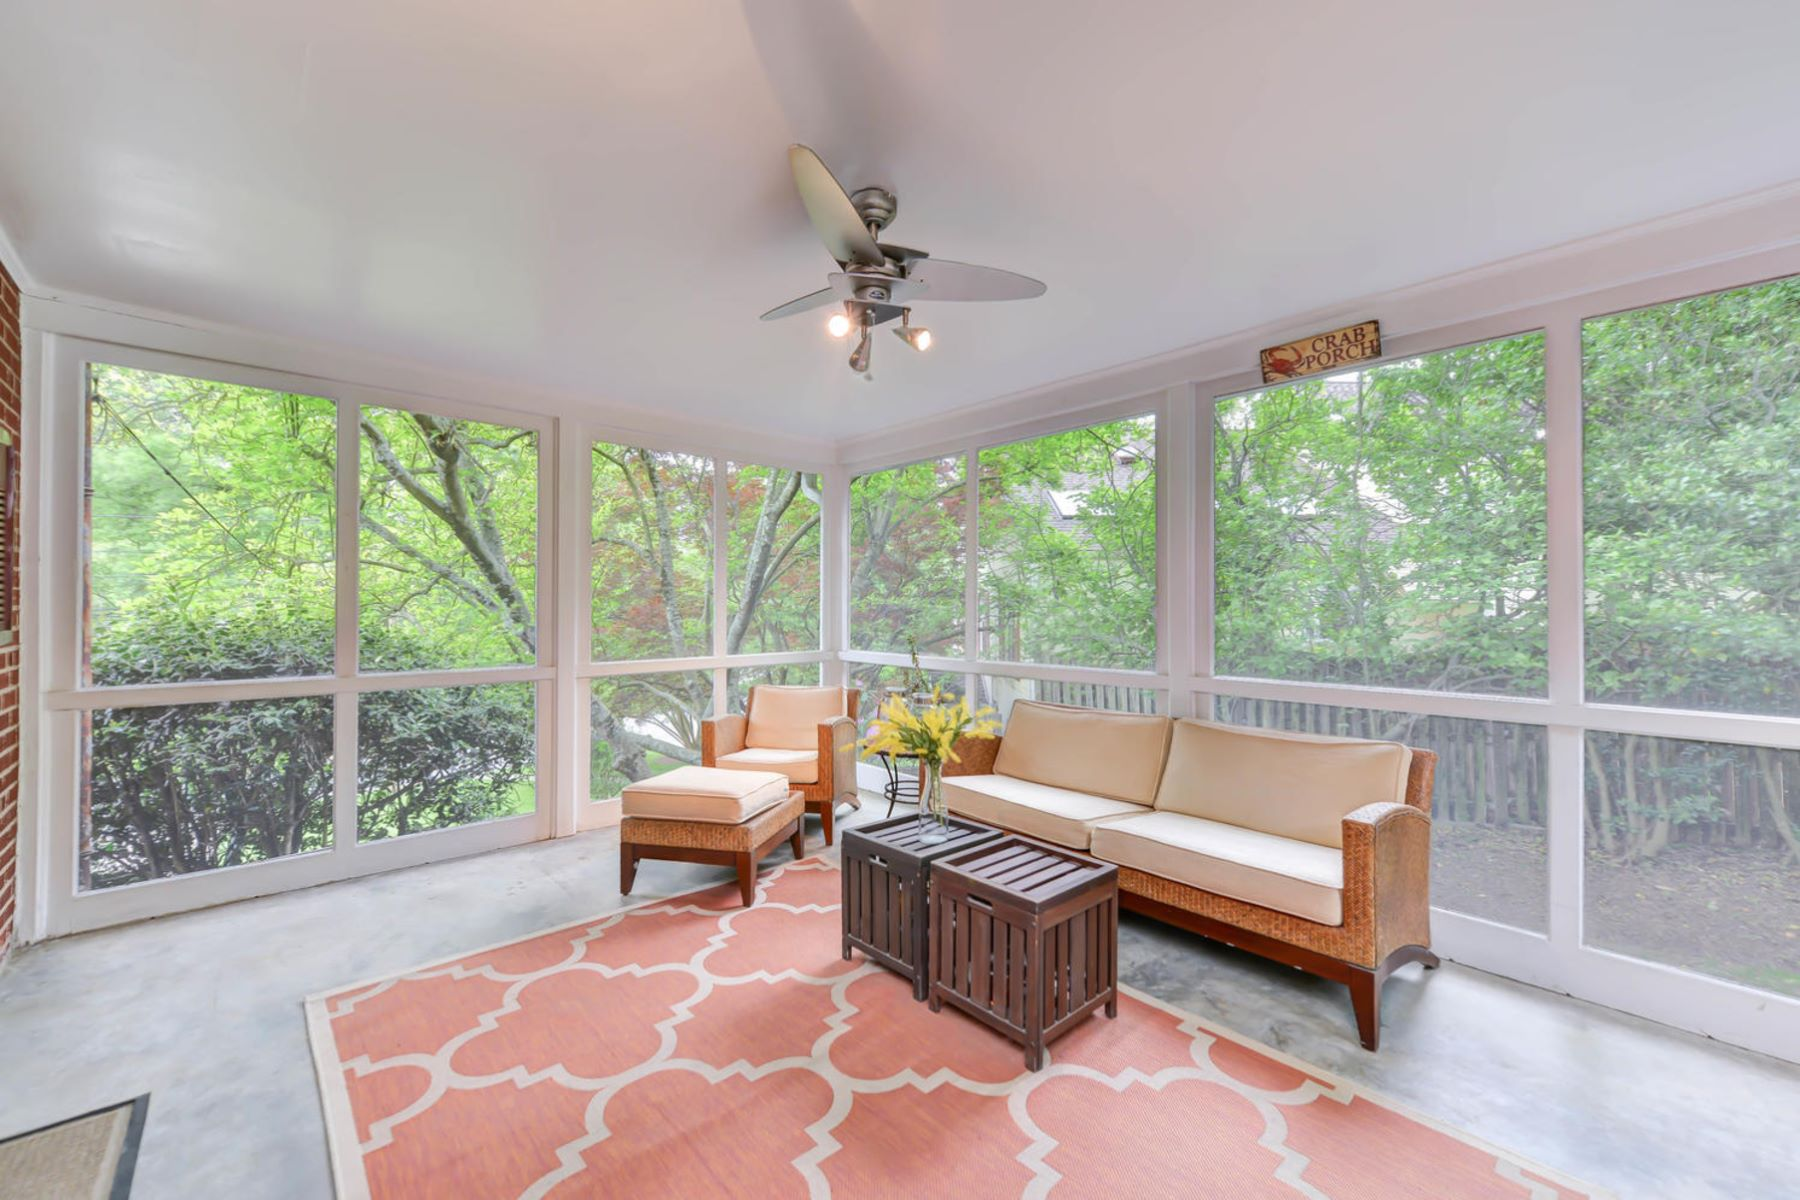 Additional photo for property listing at Dunlop Hills 3102 Brooklawn Ter Chevy Chase, Maryland 20815 United States